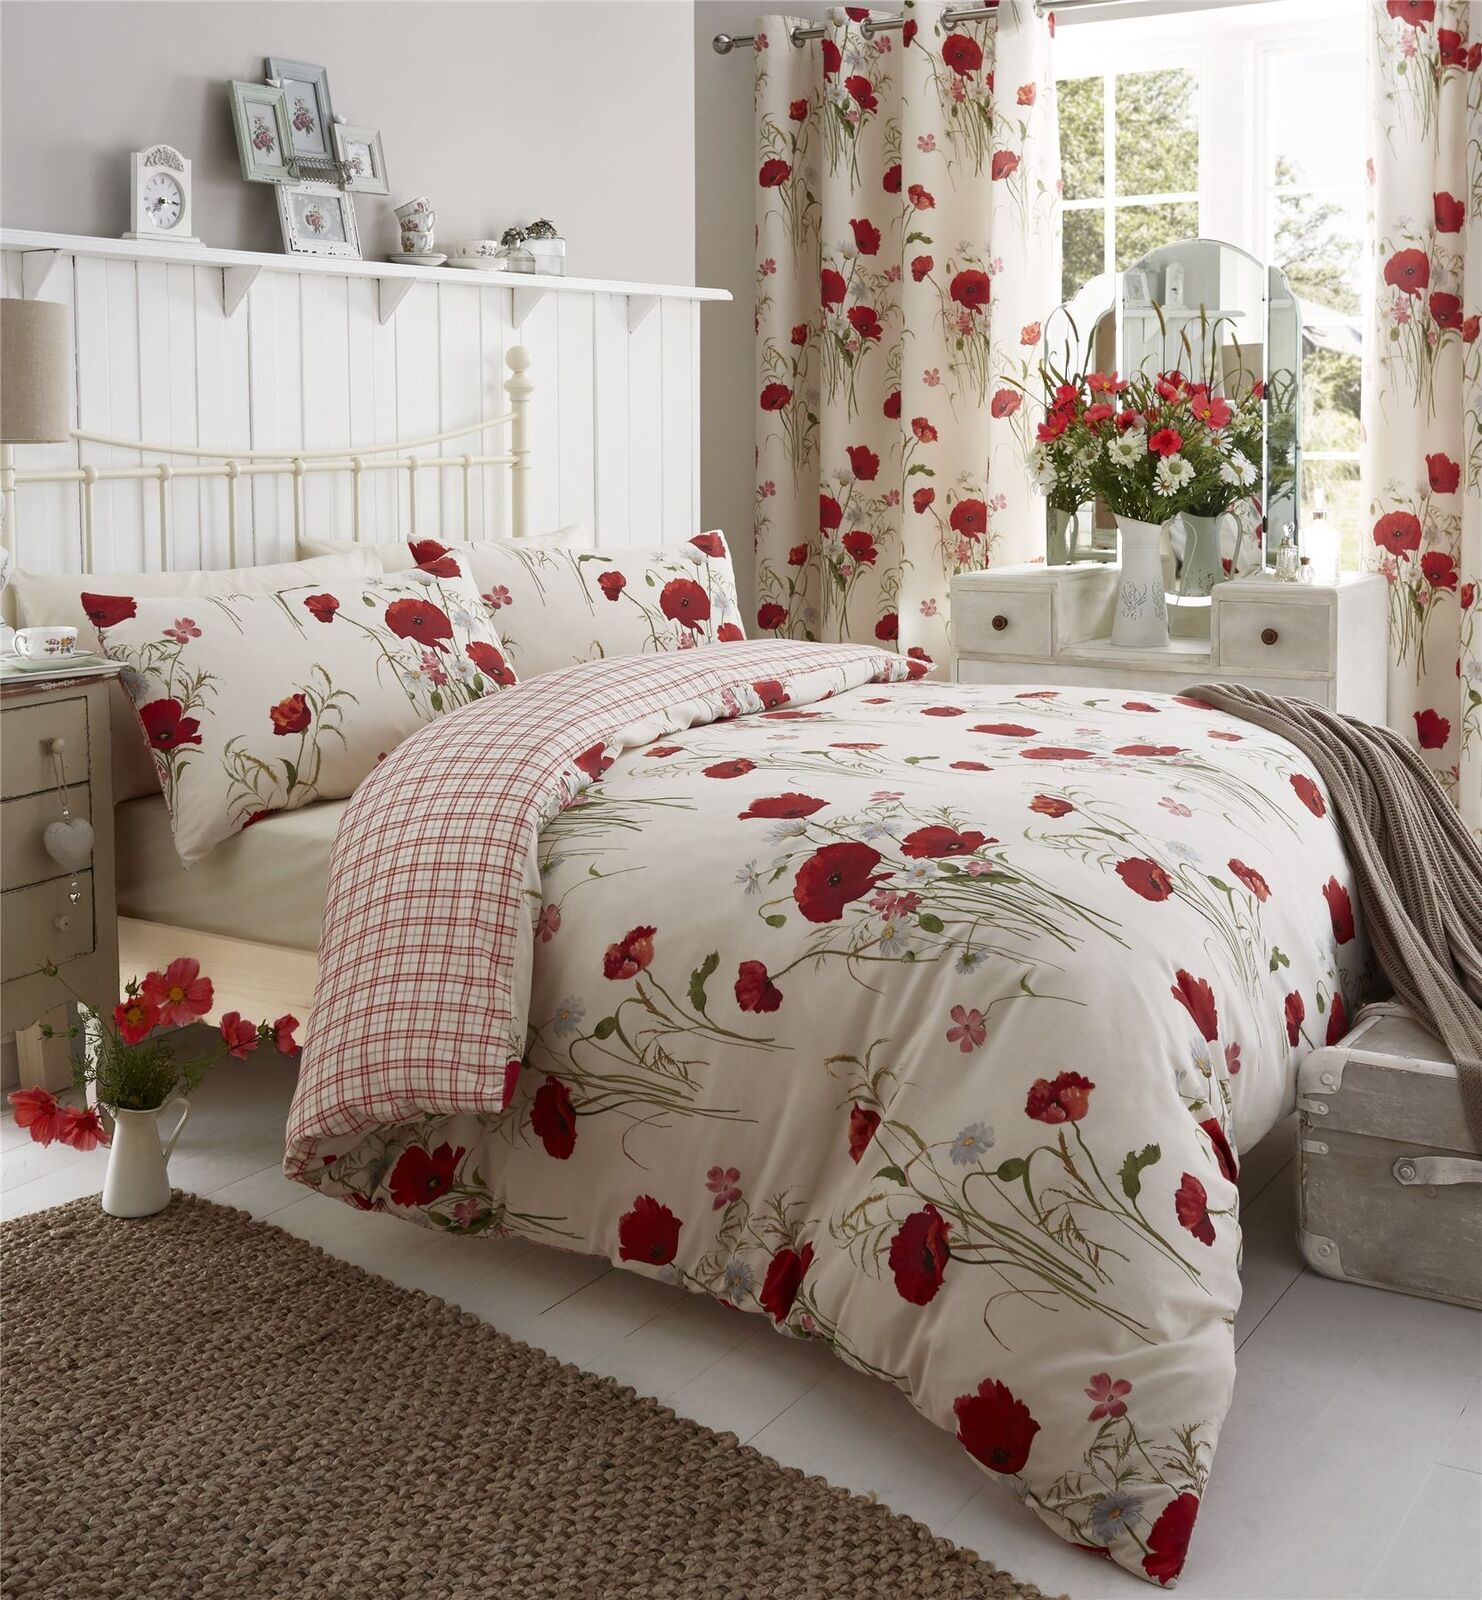 MEADOW POPPY DAISY rot KING Größe DUVET COMFORTER COVER & RING TOP CURTAINS